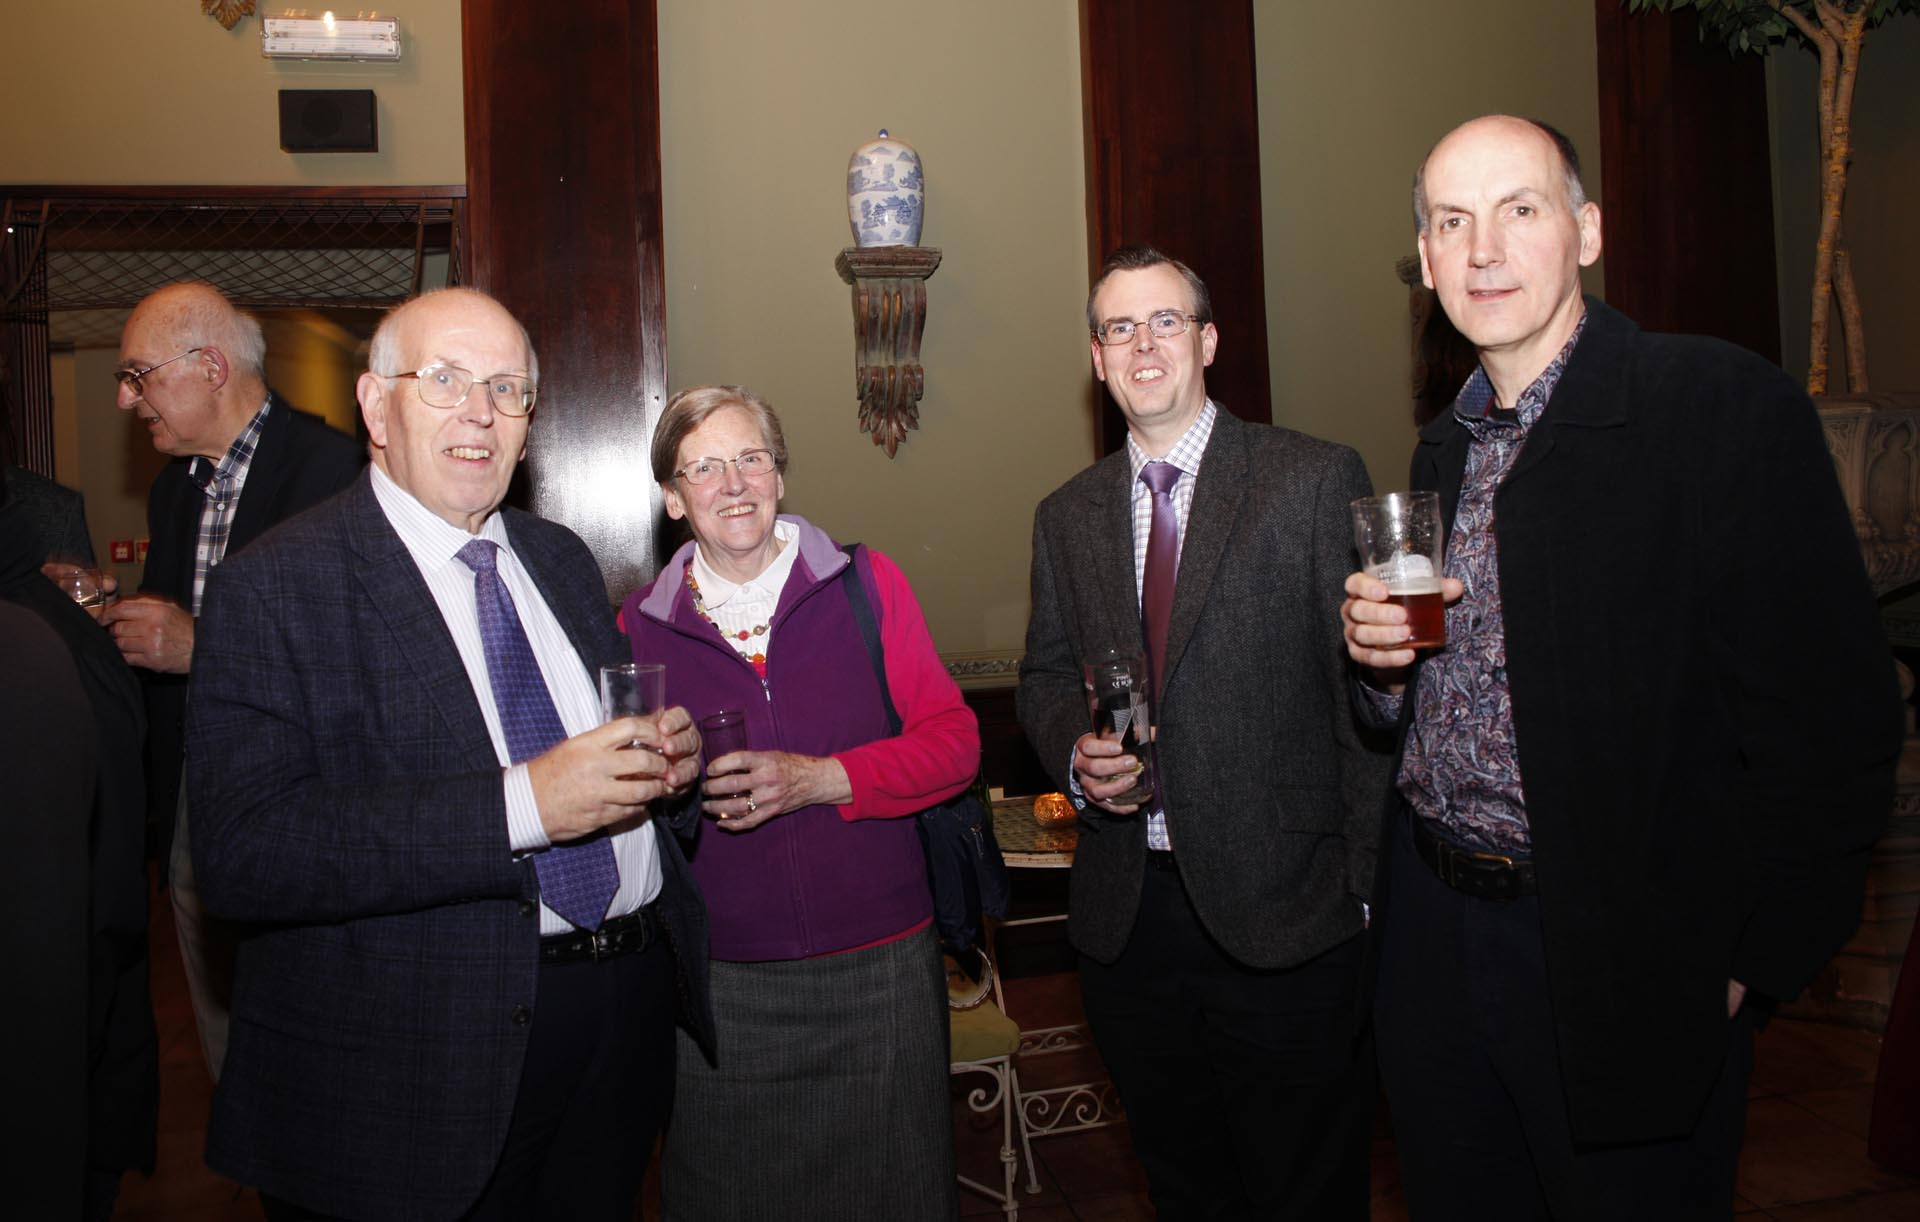 ISCVEx 2020 Networking Dinner Image 19